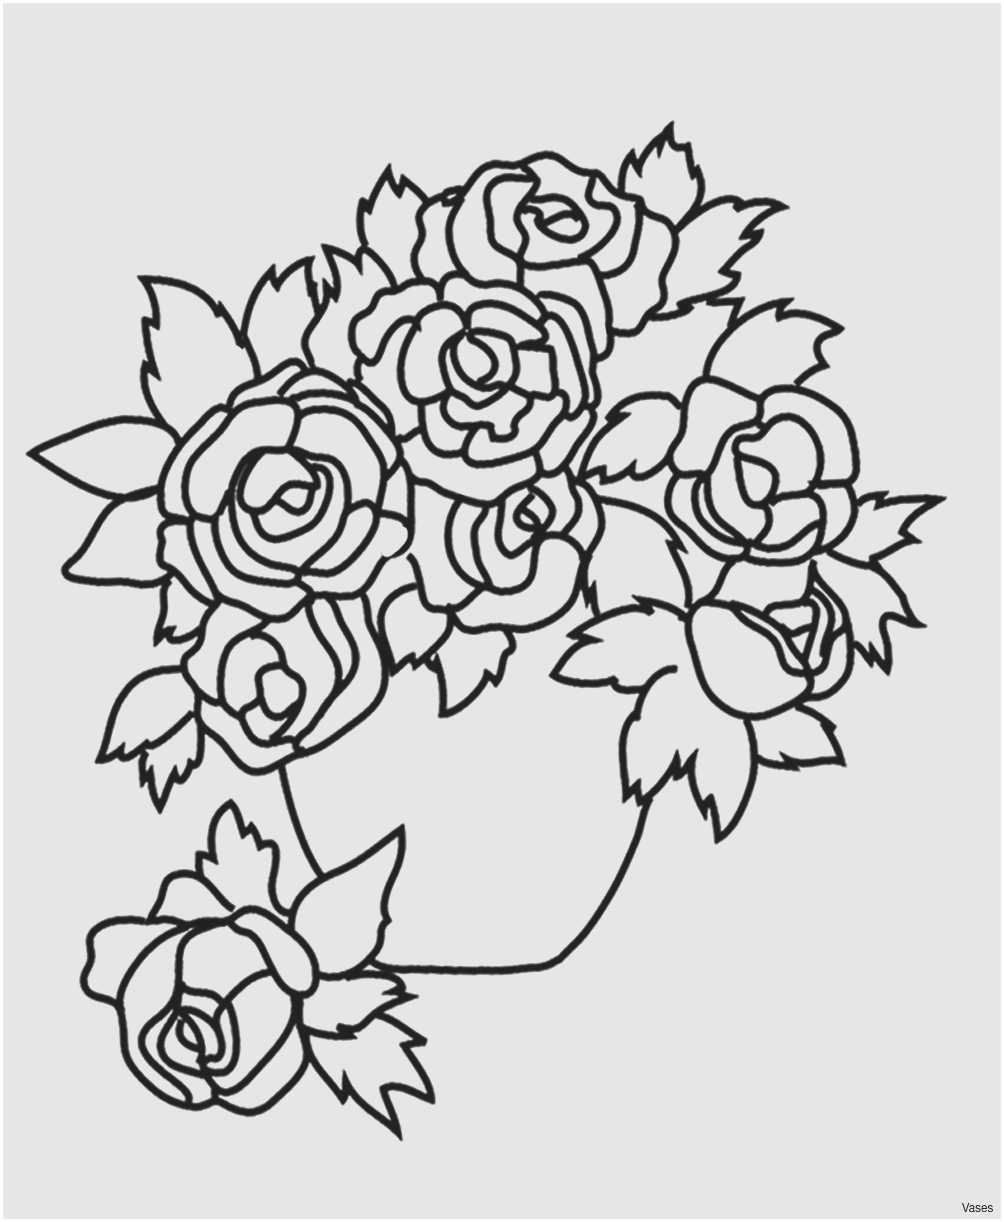 tall white vases wholesale of 16 lovely flowers in a tall white vase bogekompresorturkiye com in vases flowers in vase coloring pages a flower top i 0d flowers awesome